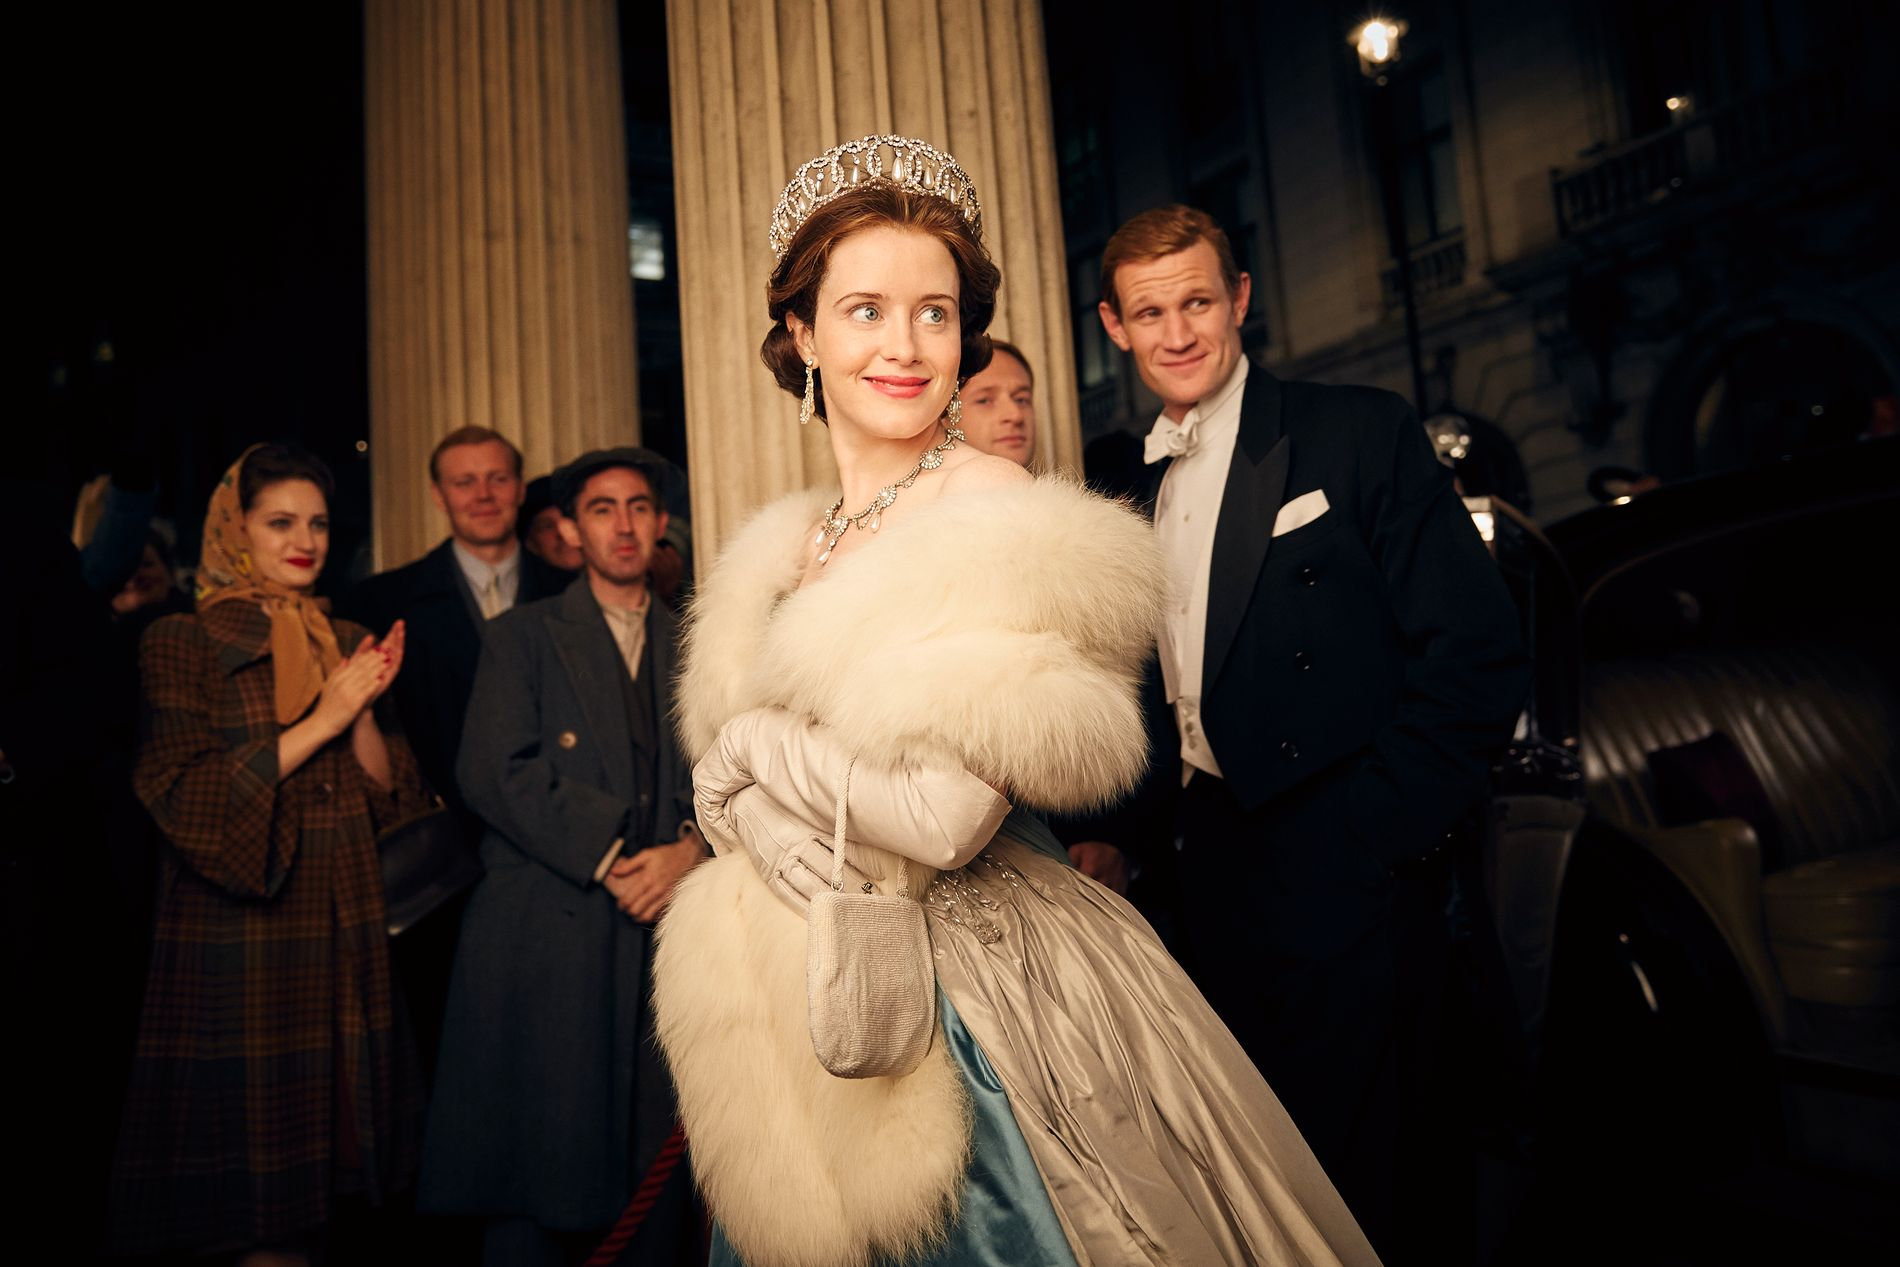 KONGELIG: Claire Foy er nominert for rollen som dronning Elizabeth i «The Crown». Foto: Robert Viglasky/Netflix